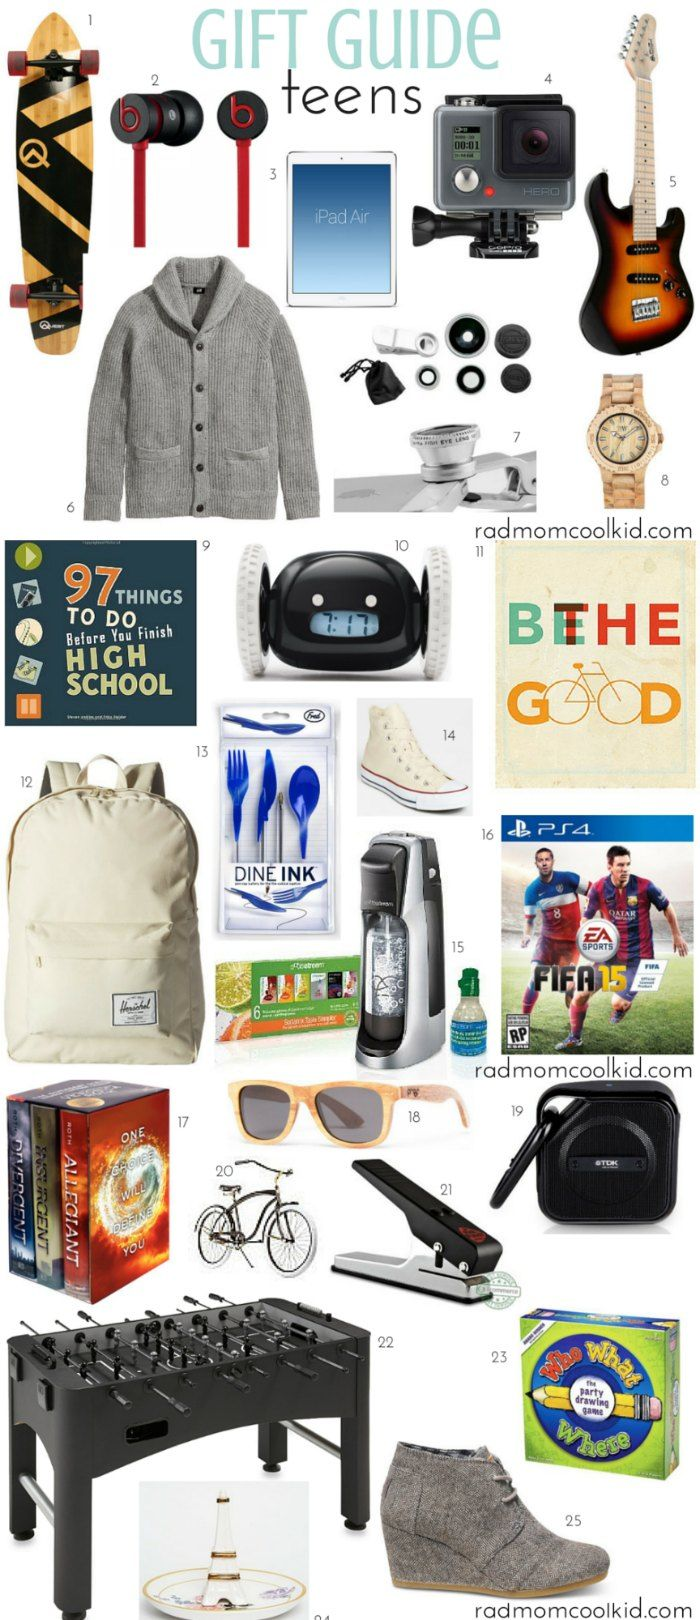 Gift Guide: Teen | Rad Mom Cool Kid | Pinterest | Teen, Gift and ...